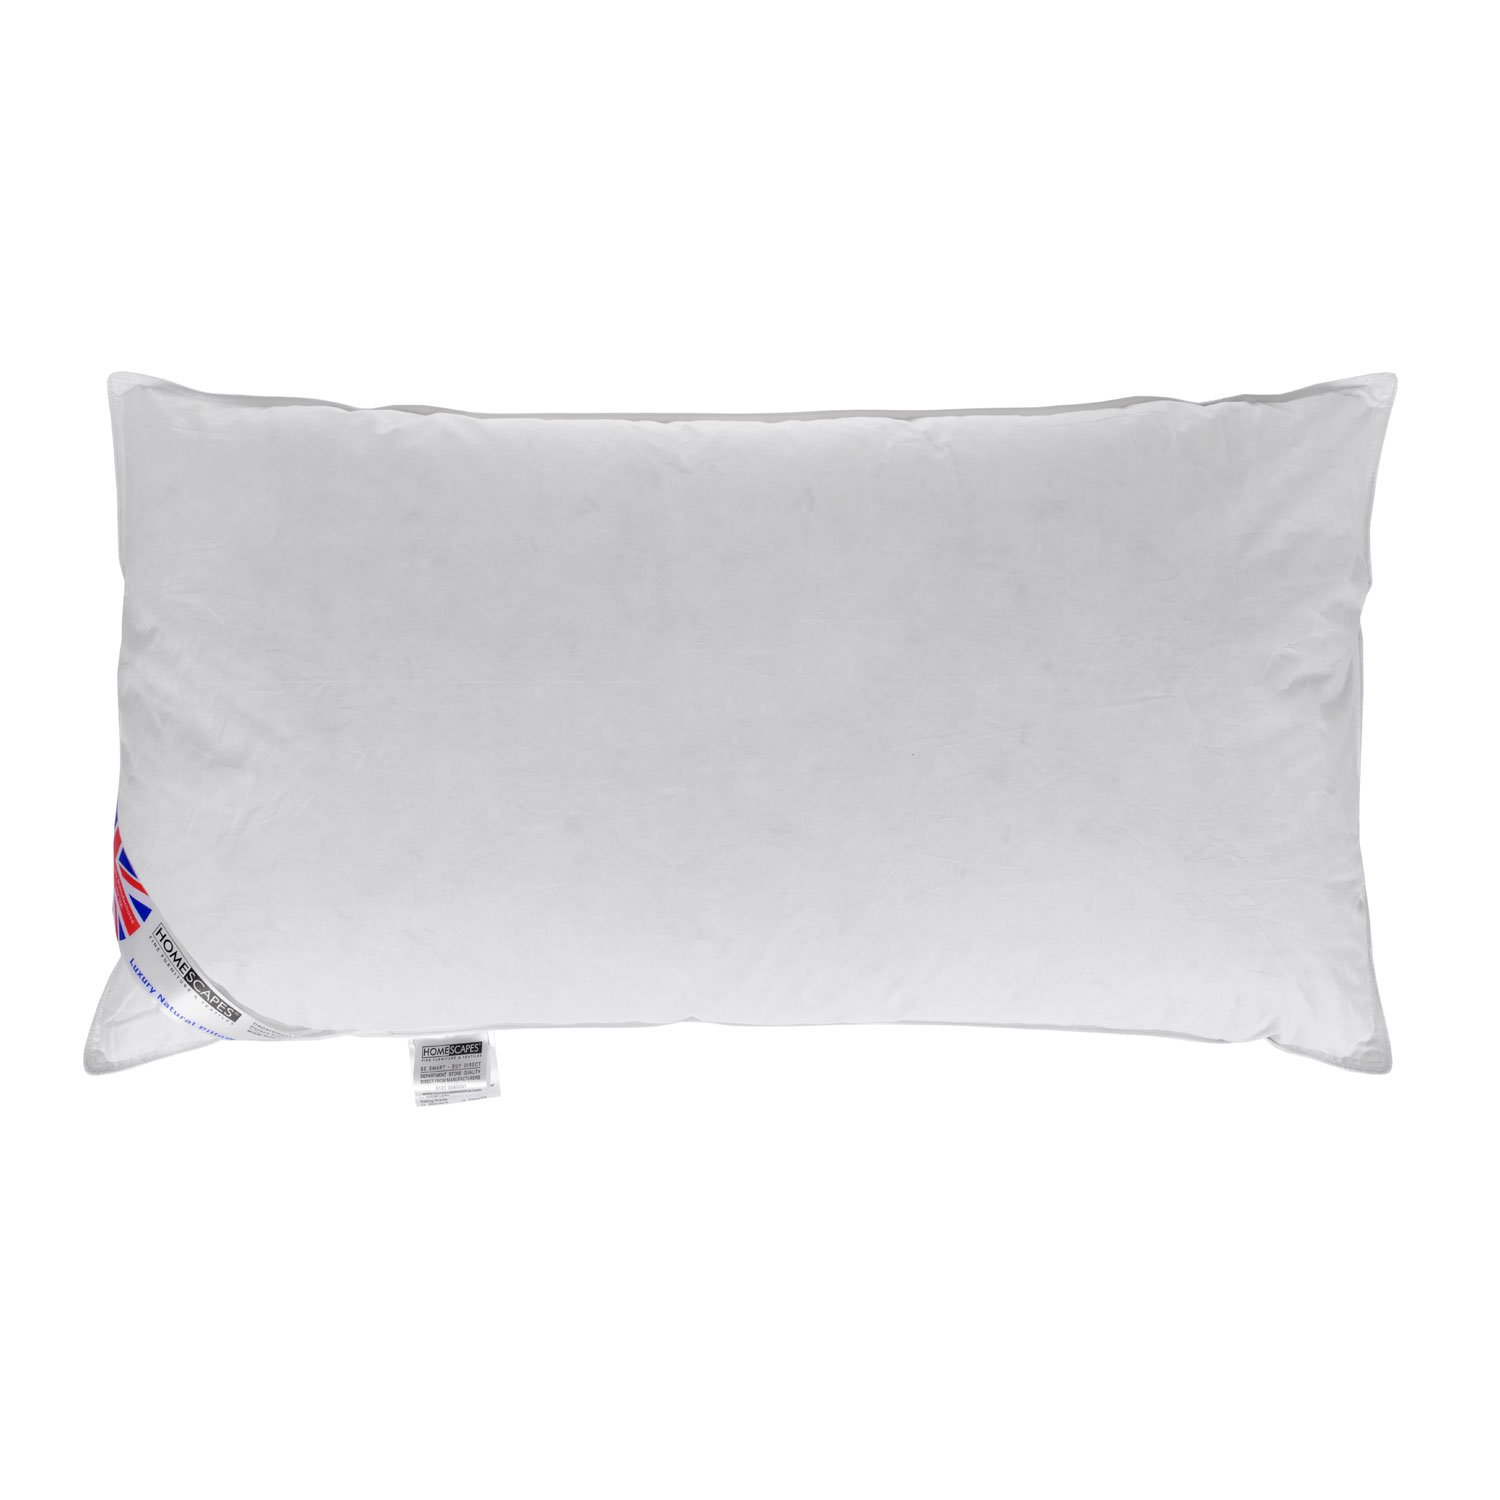 Homescapes Duck Feather Down King Size 3 ft Pillow Bolster 19 x 36 Luxury Hotel Quality with Soft/Medium Firmness